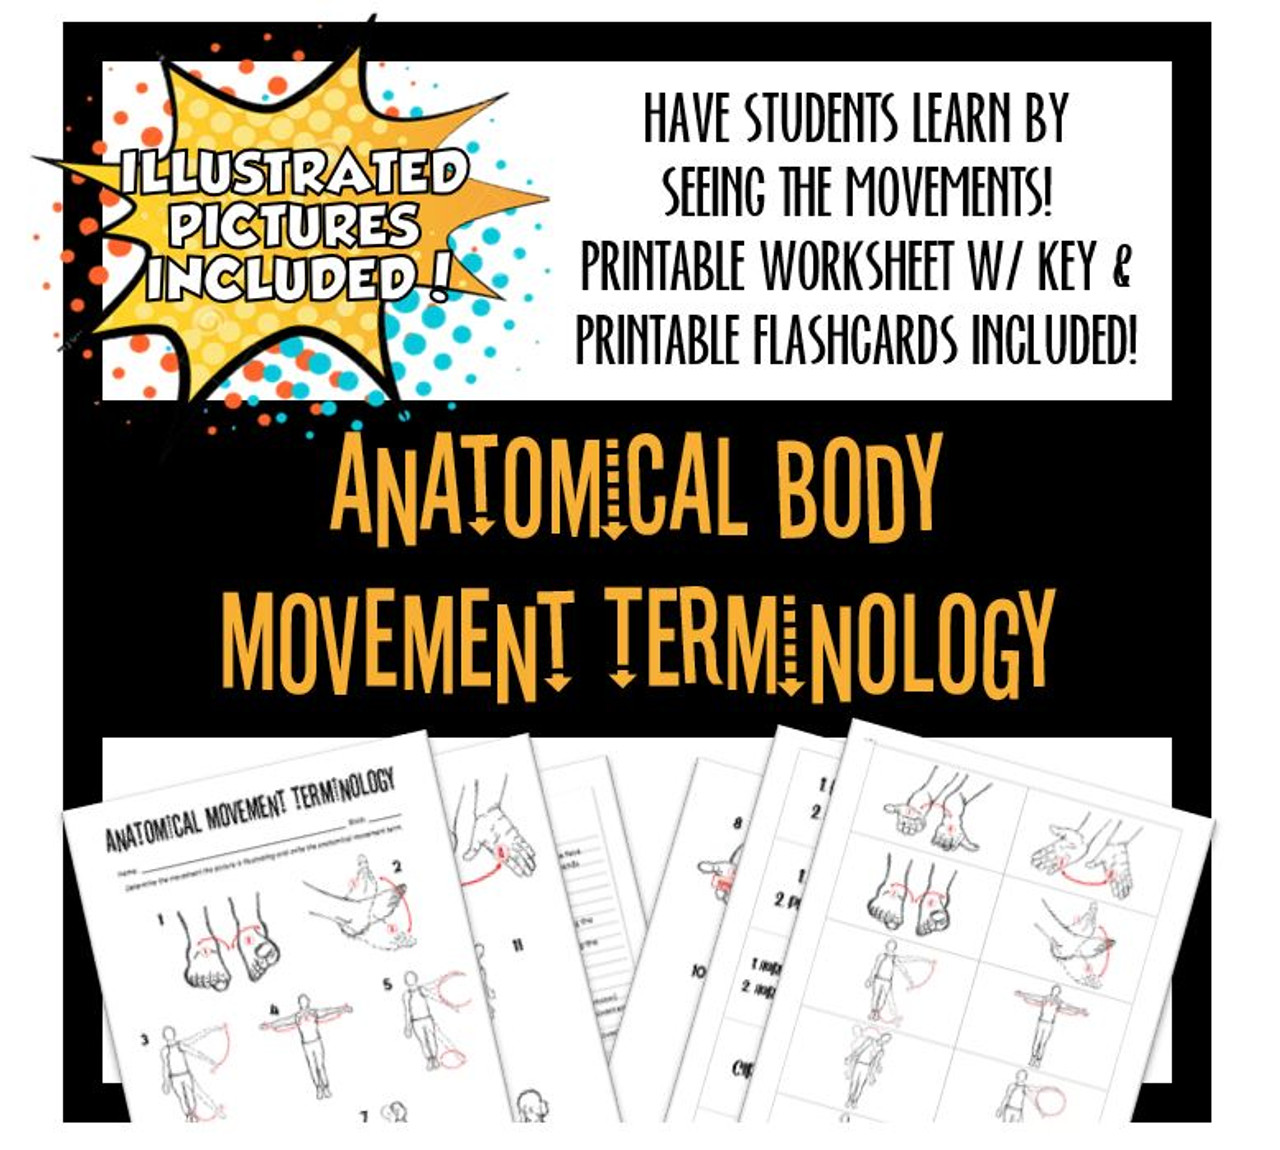 Anatomical Body Movements w/ Illustrations- Worksheet & Flashcards! Distance Learning Options!